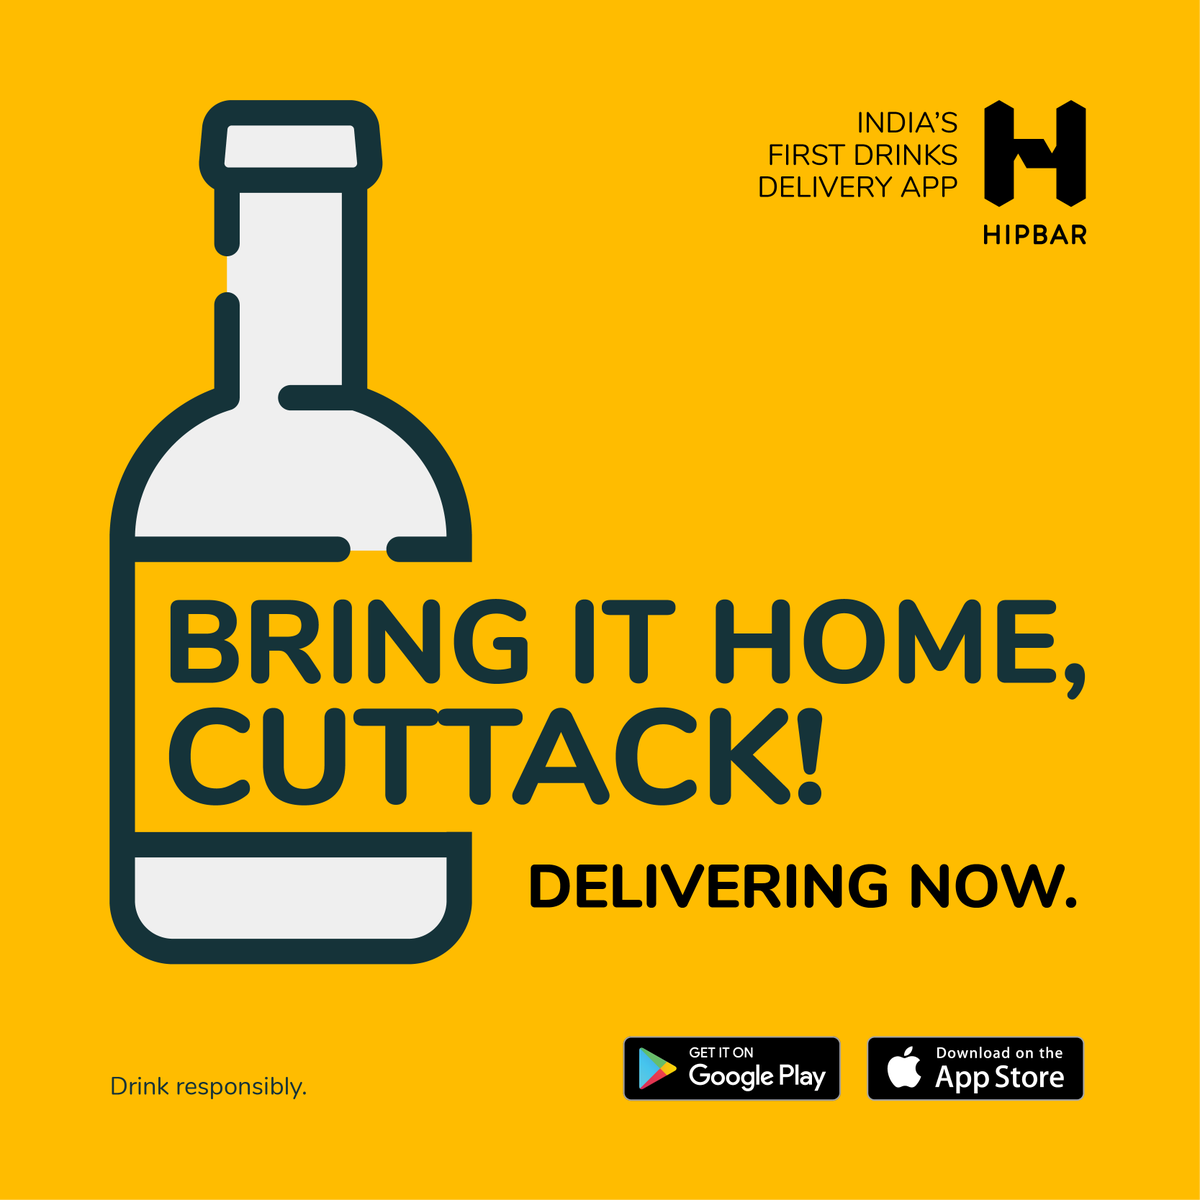 Hey! We now #BringItHome across CUTTACK. Get your favourite drinks home delivered, wherever you live.  Order now - https://t.co/wYCpBlXGFG  HipBar, available on iOS & Android!  #HipBar #Drinks #Cheers #Weekend #OrderUp #HomeDelivery #StaySafe #DrinkRight #Cuttack #Odisha https://t.co/ANue5DExay